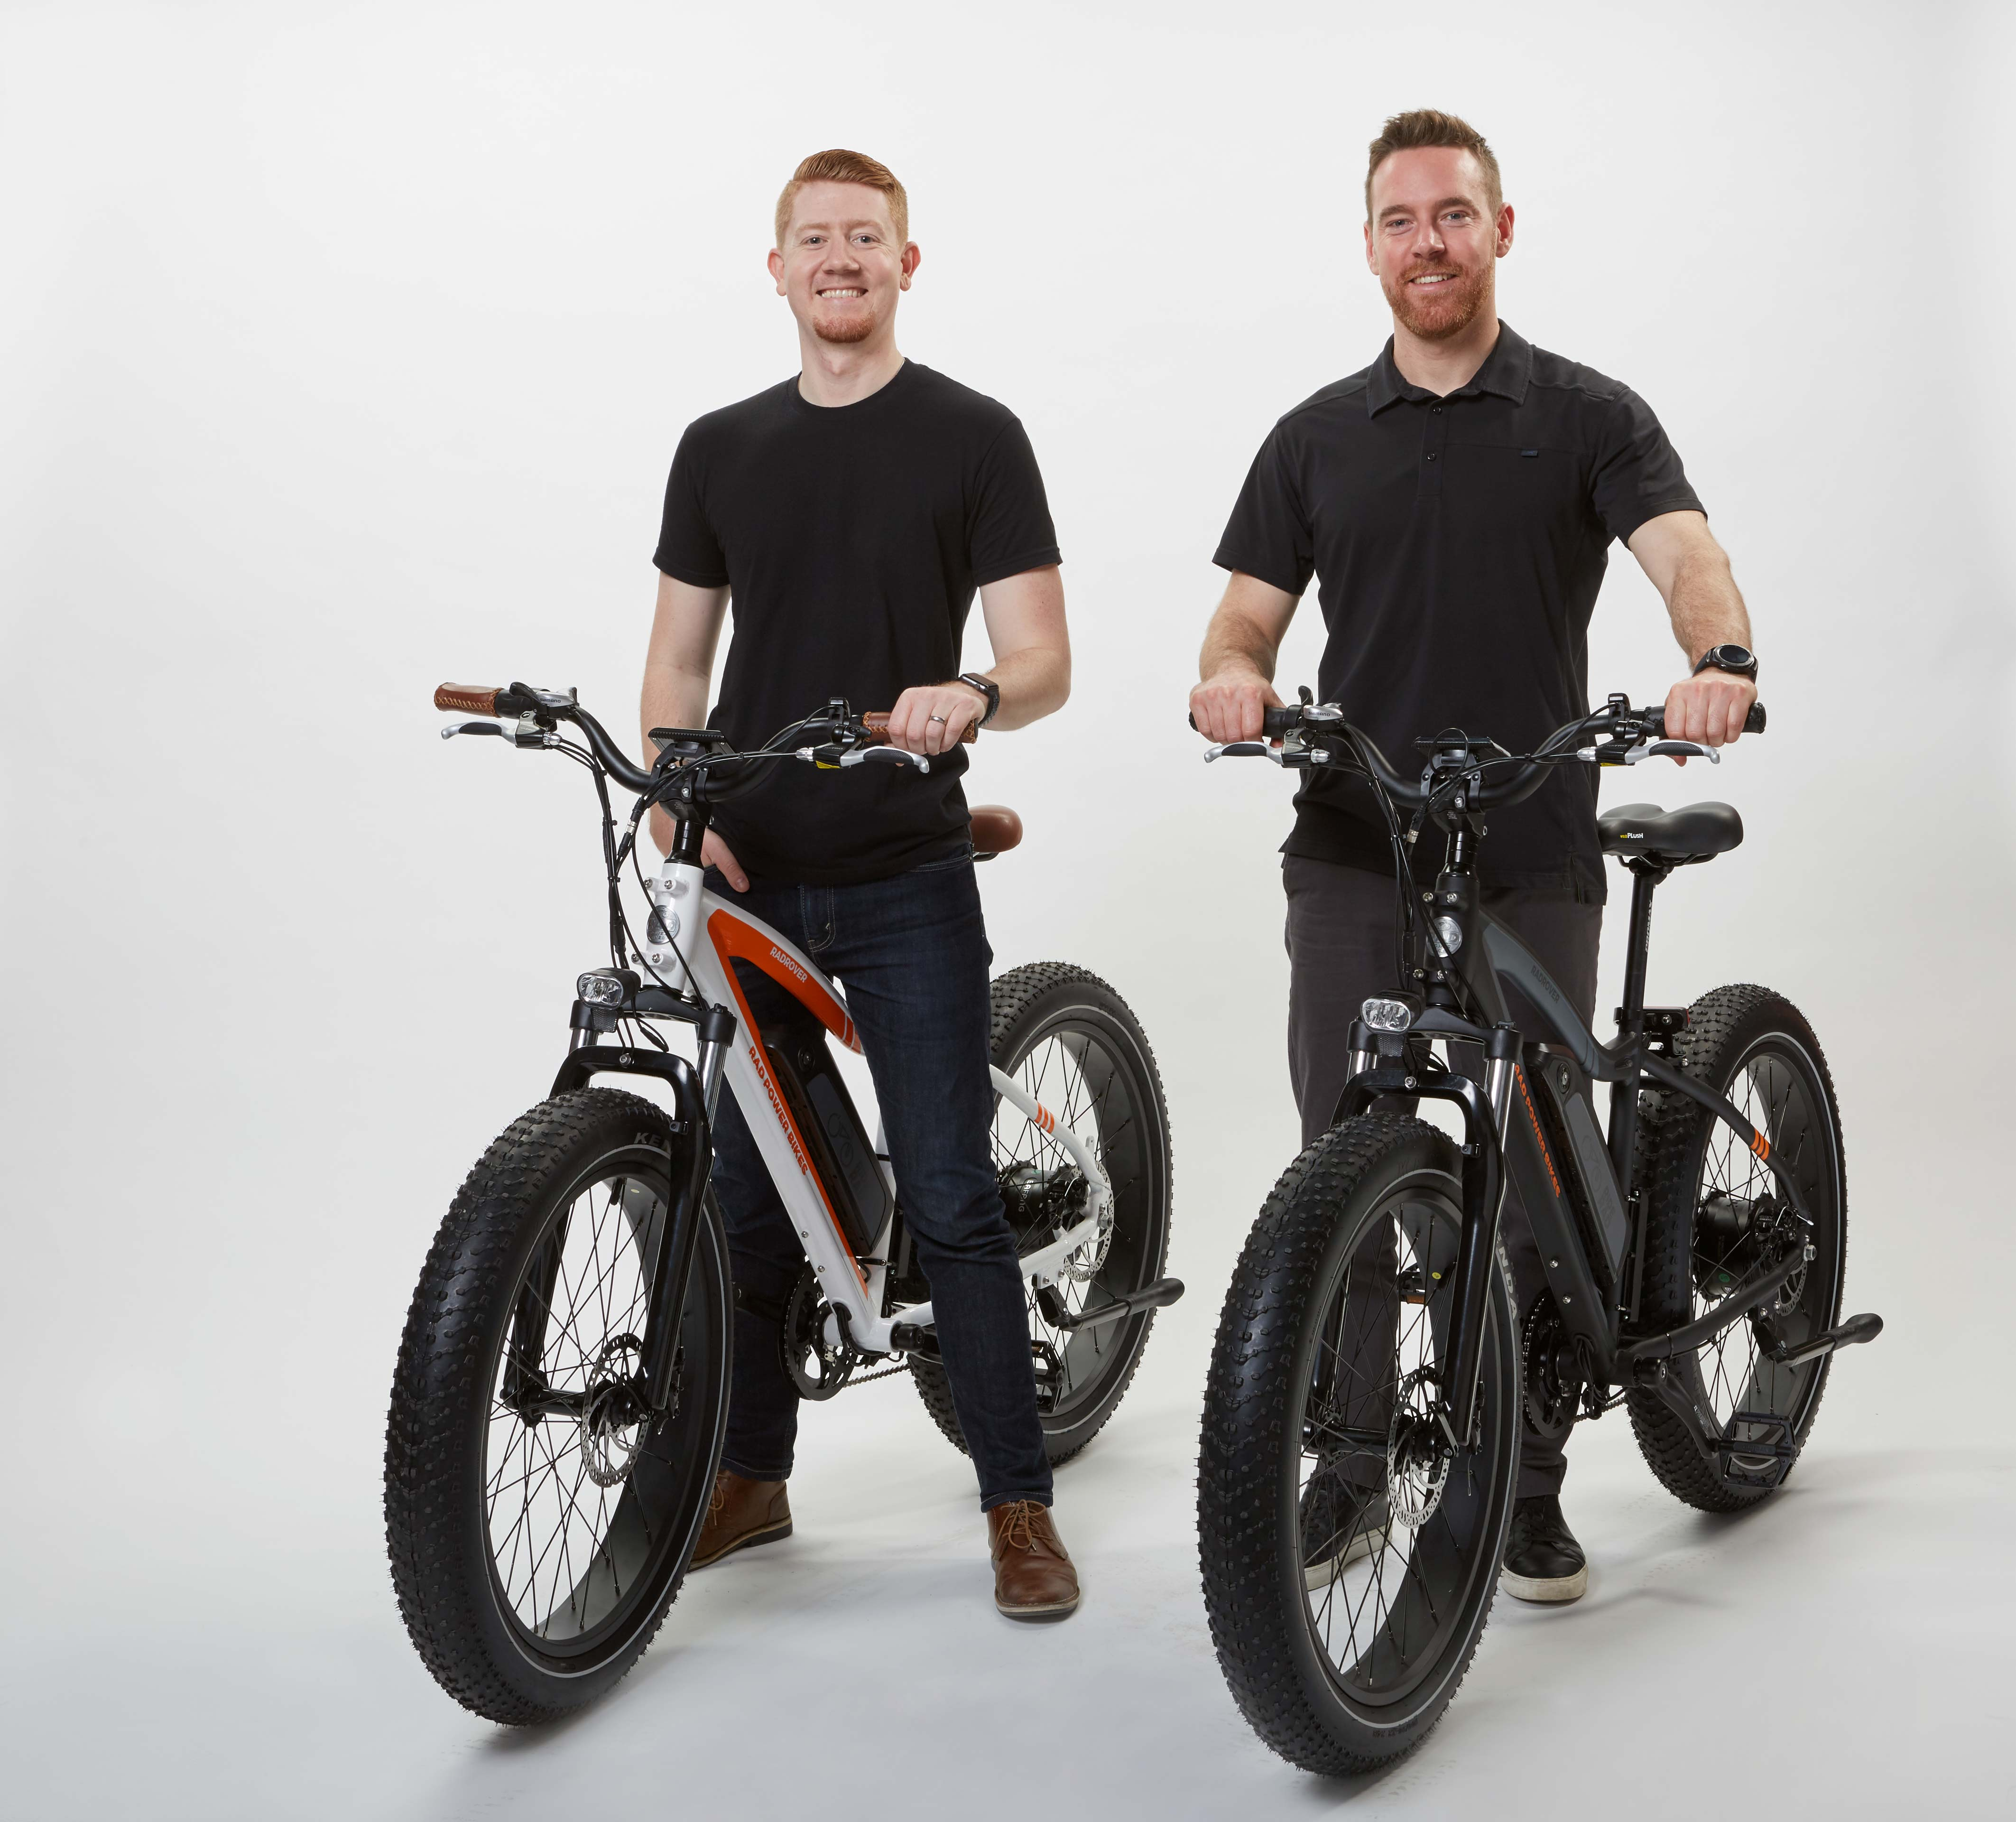 Rad Power Bikes founders Ty Collins and Mike Radenbaugh